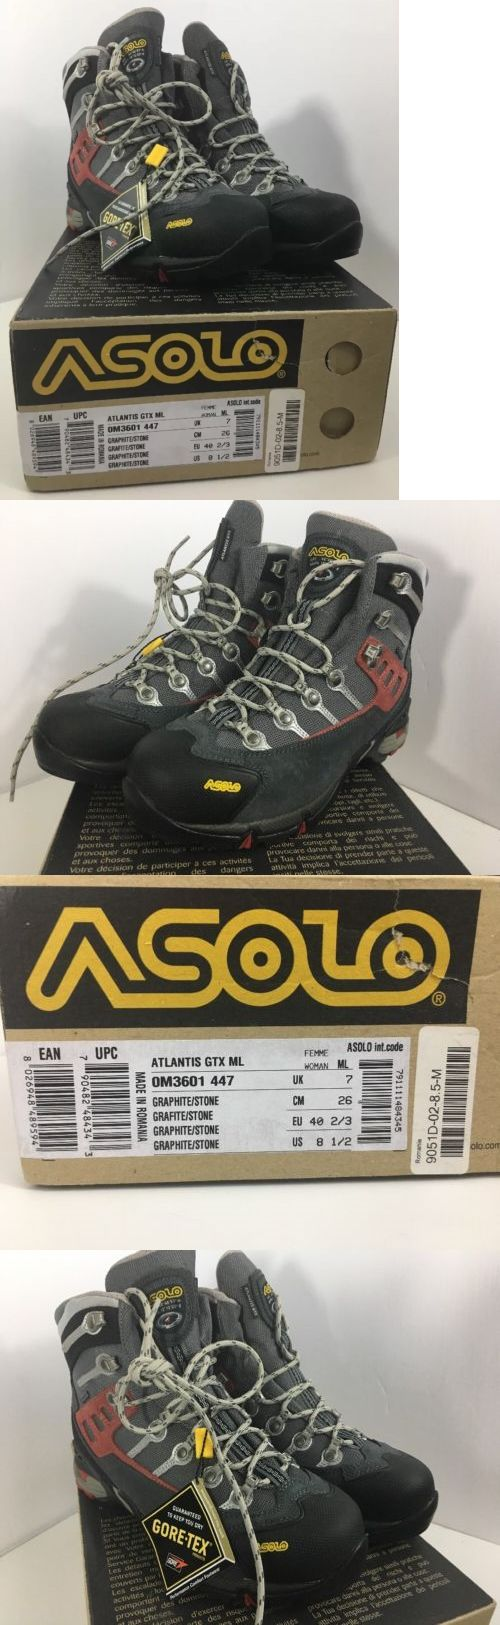 Womens 181393: Women S Asolo Atlantis Gtx Ml Gore-Tex® Hiking Boots Size 8.5 -> BUY IT NOW ONLY: $99.99 on eBay!